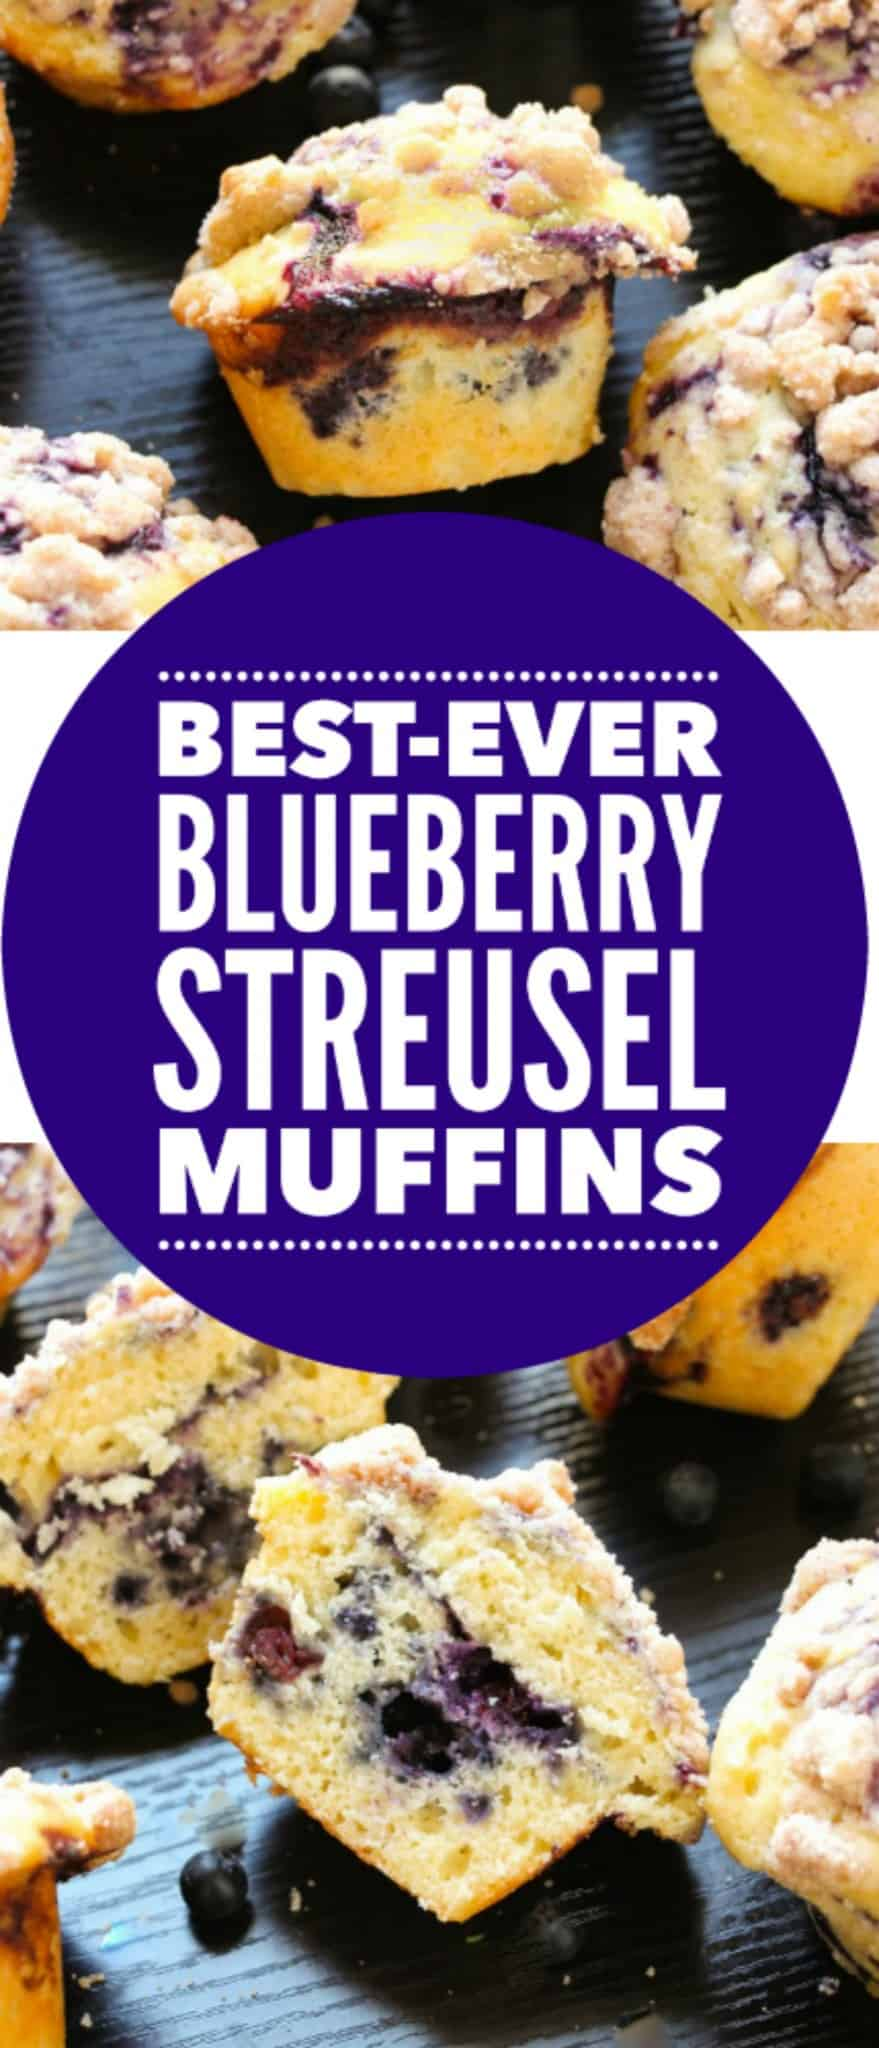 blueberry-muffins-barkery